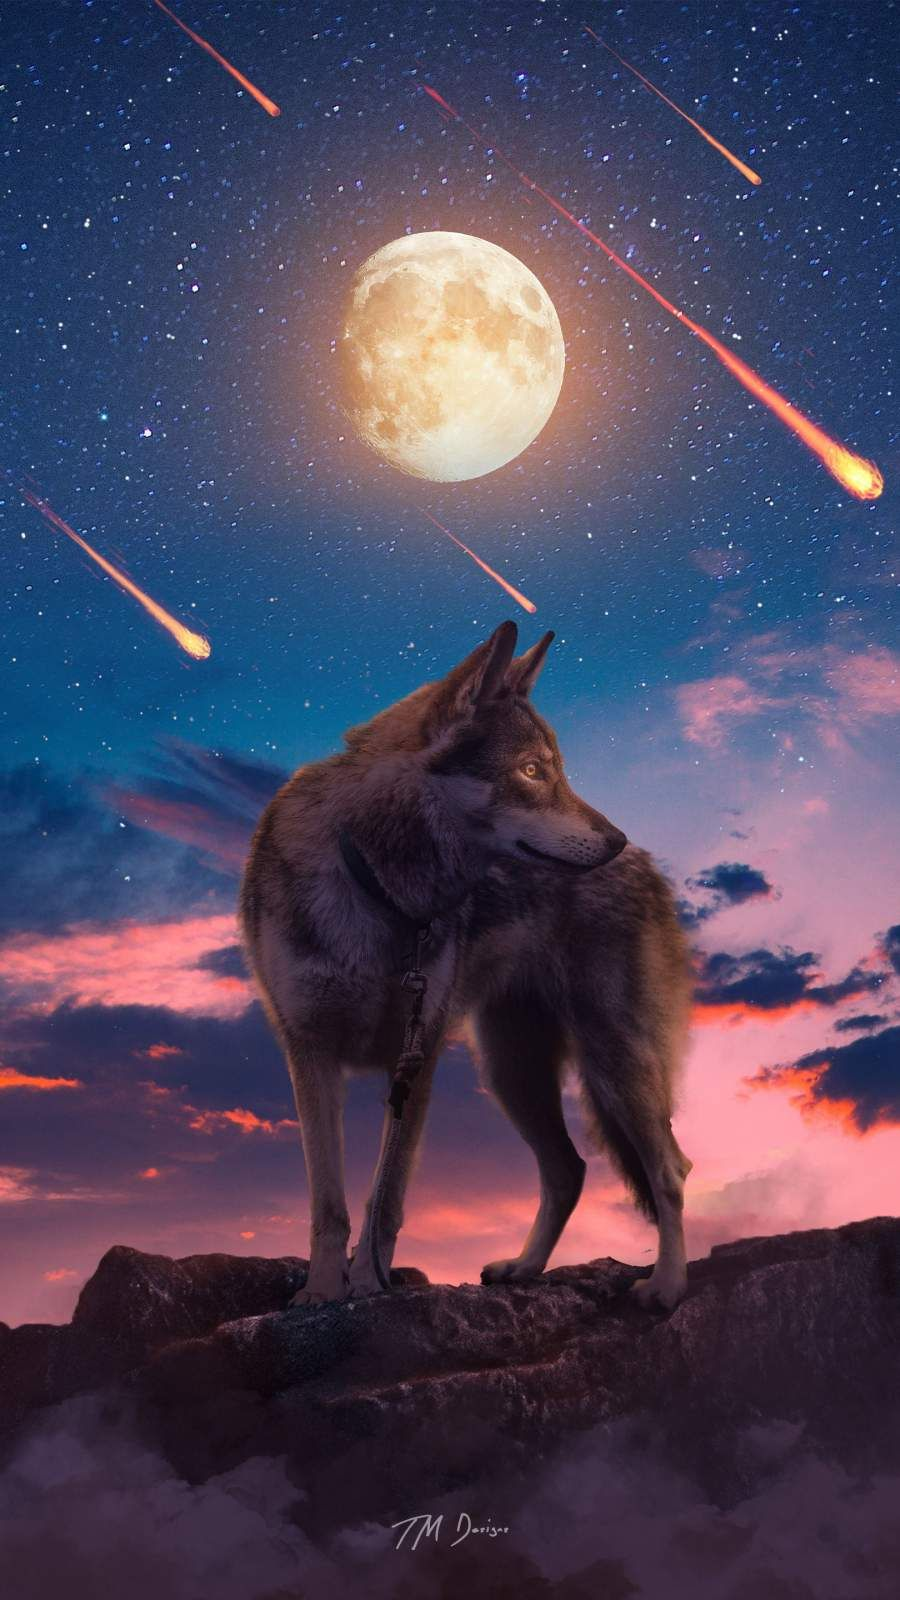 Iphone Wallpapers For Iphone 12 Iphone 11 Iphone X Iphone Xr Iphone 8 Plus High Quality Wallpapers Ipad In 2021 Wolf Spirit Animal Wolf Wallpaper Wolf Background